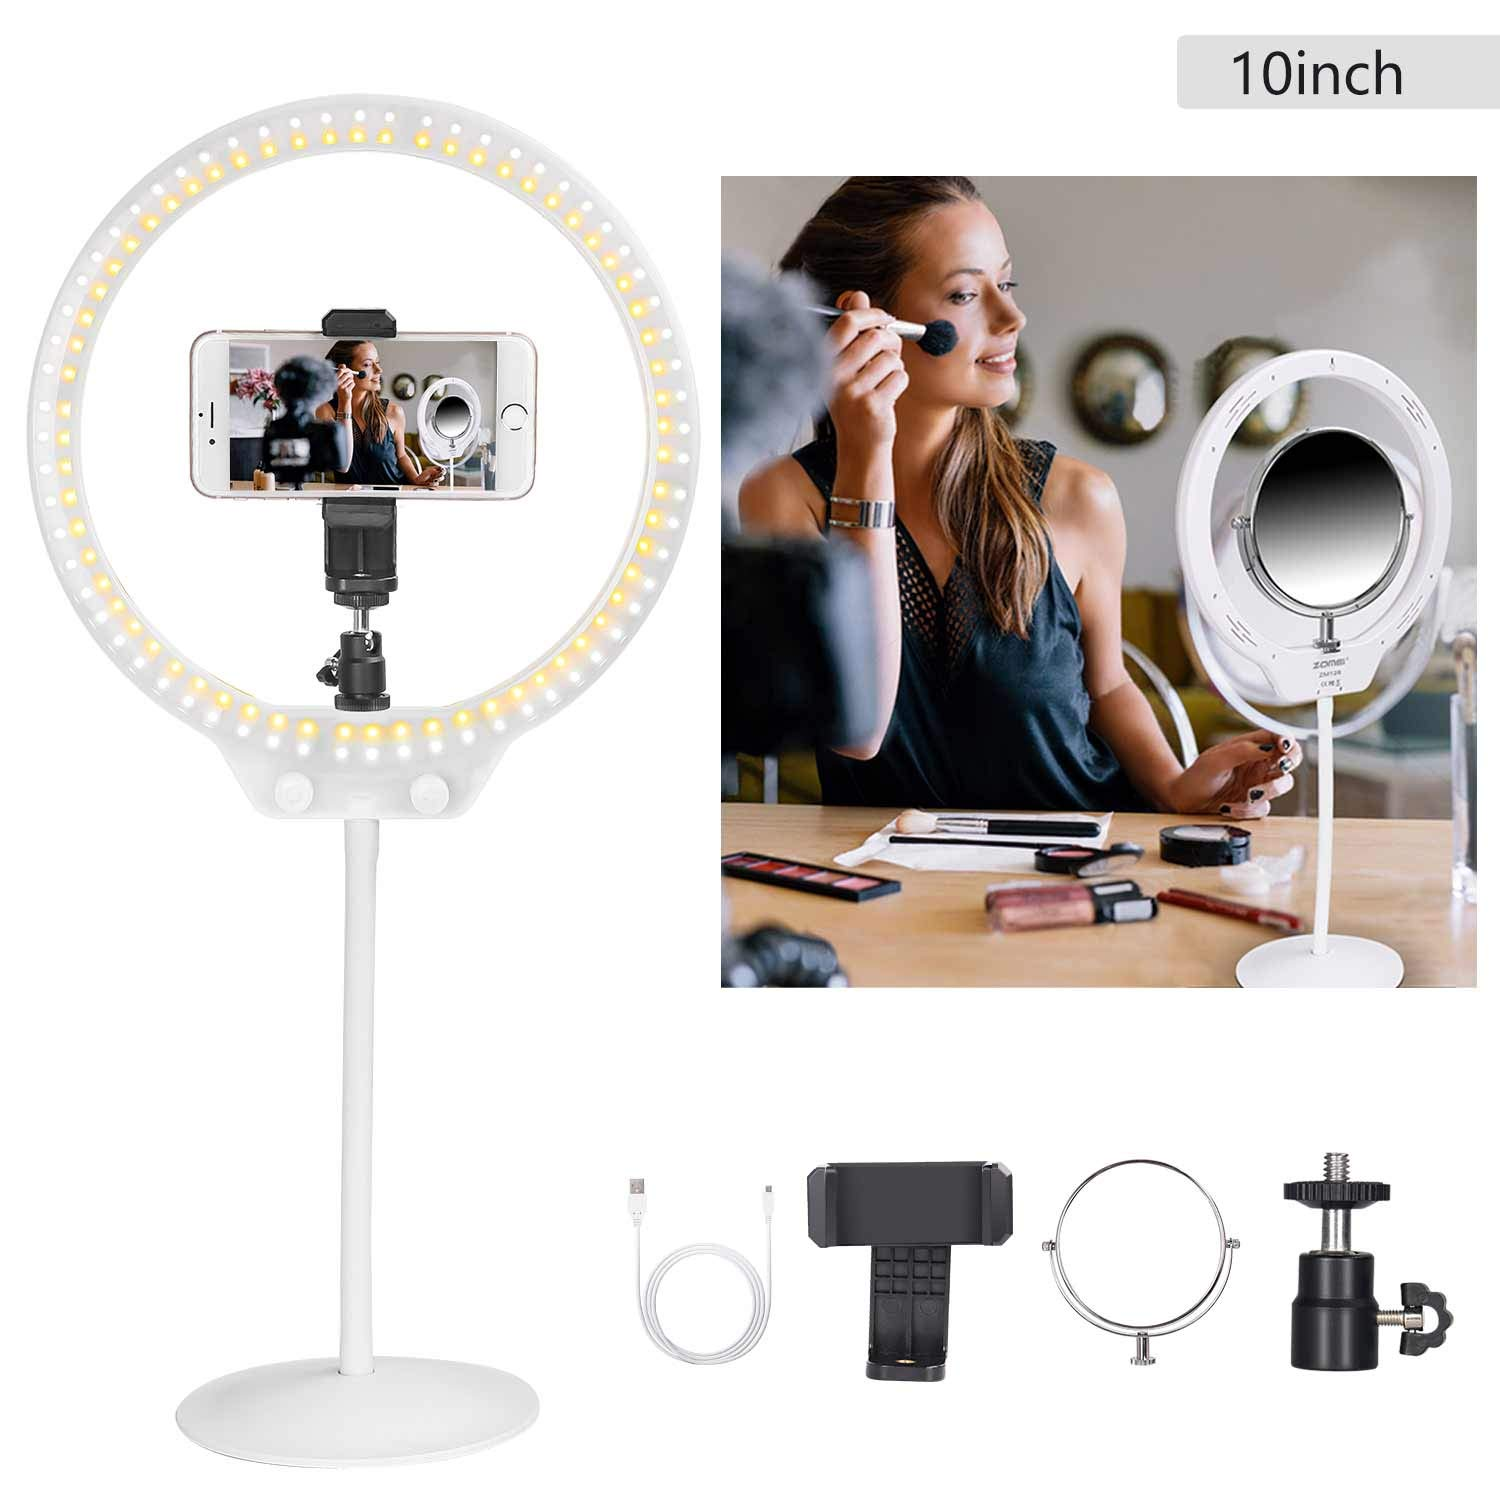 ZoMei LED Ring Light 10'' with Soft Tube Stand&Double Mirror&Phone Holder for Live Streaming,YouTube,Portrait,Dimmable Desk Makeup Ring Light for Photography with 3 Light Mode Brightness Level(White)